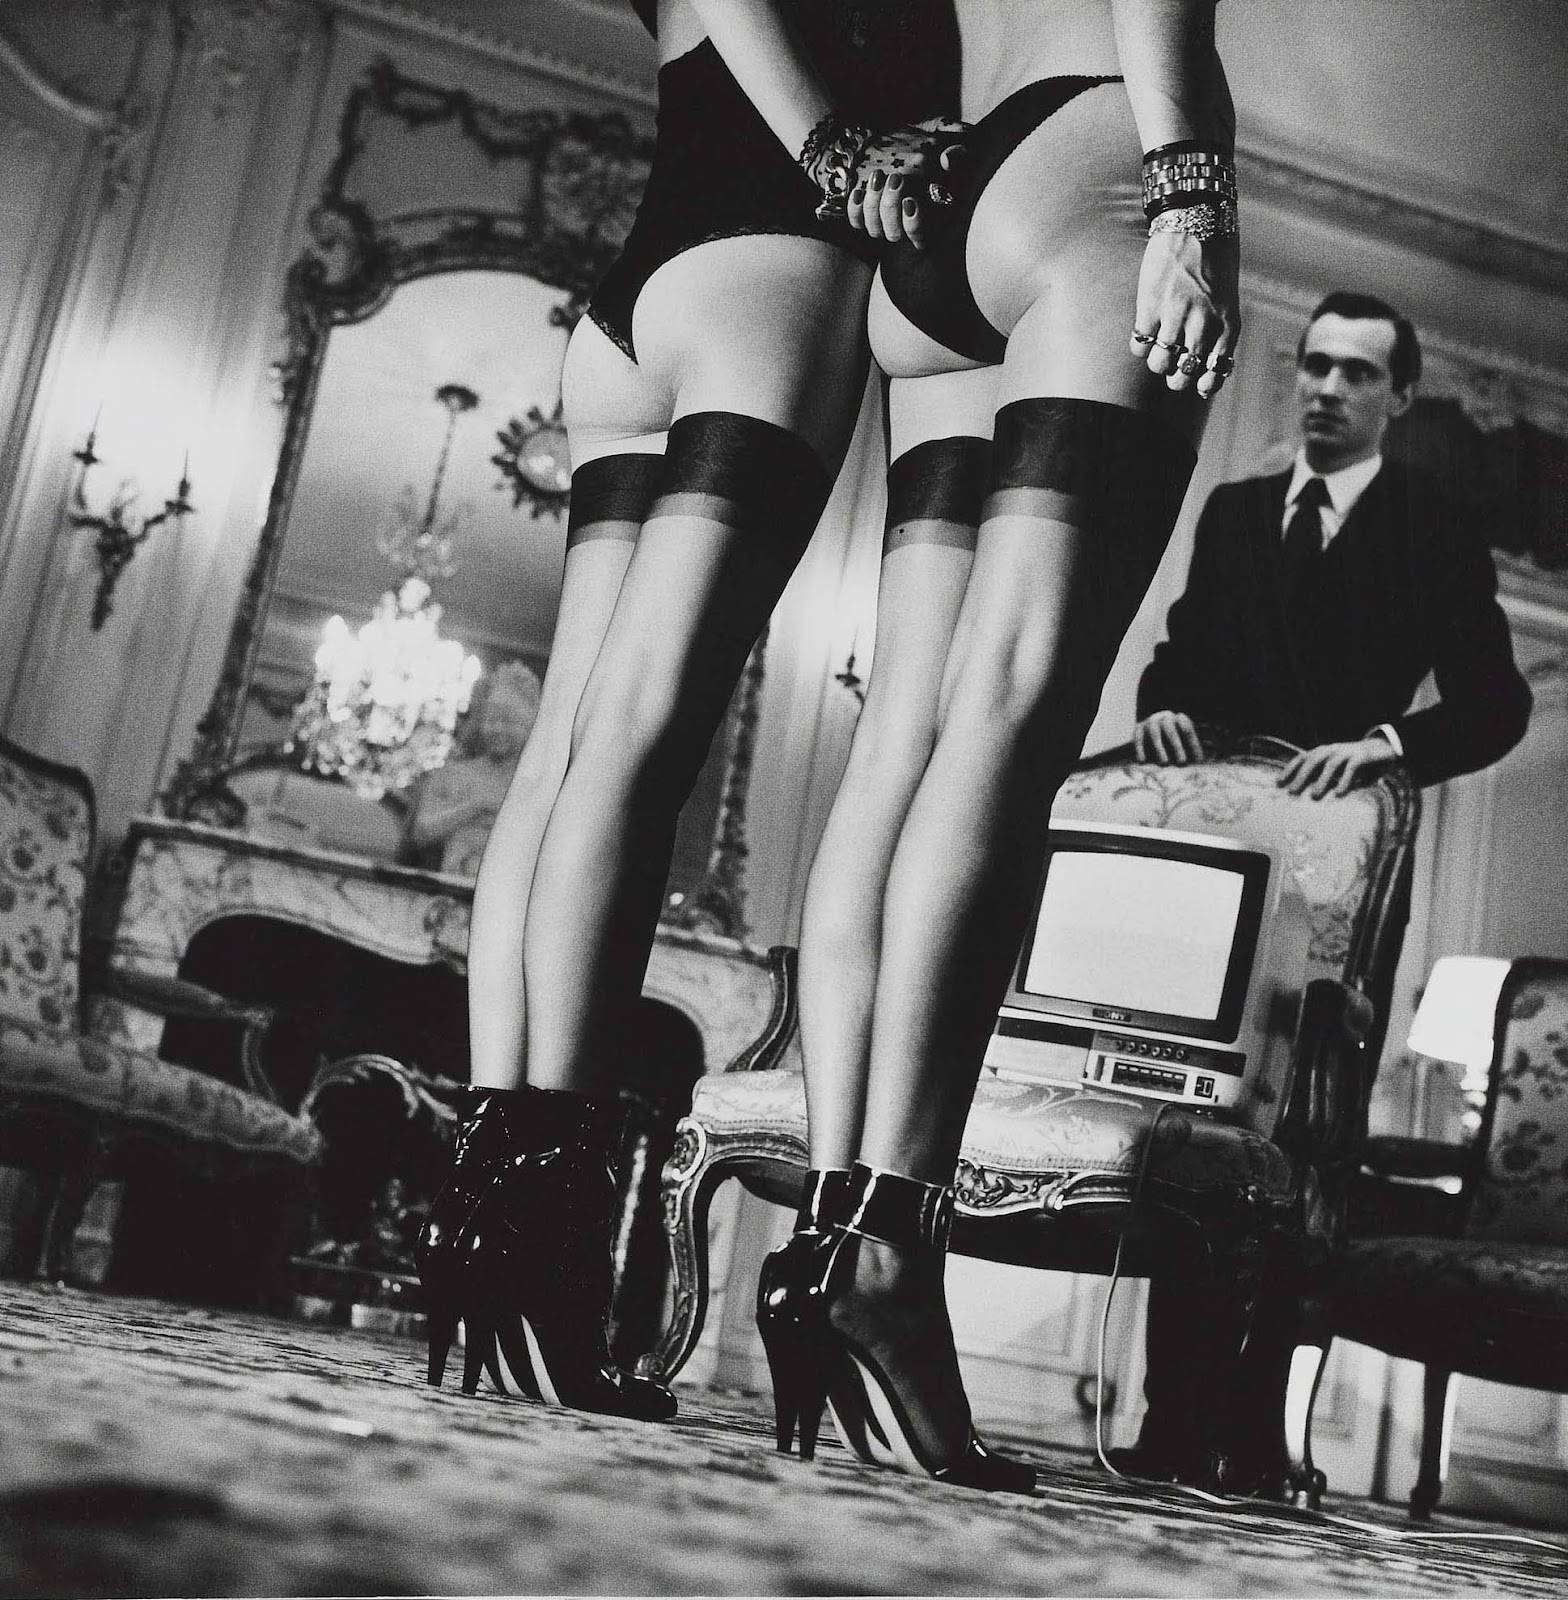 Two pairs of legs helmut newton NUDES   da Helmut Newton a Vuitton